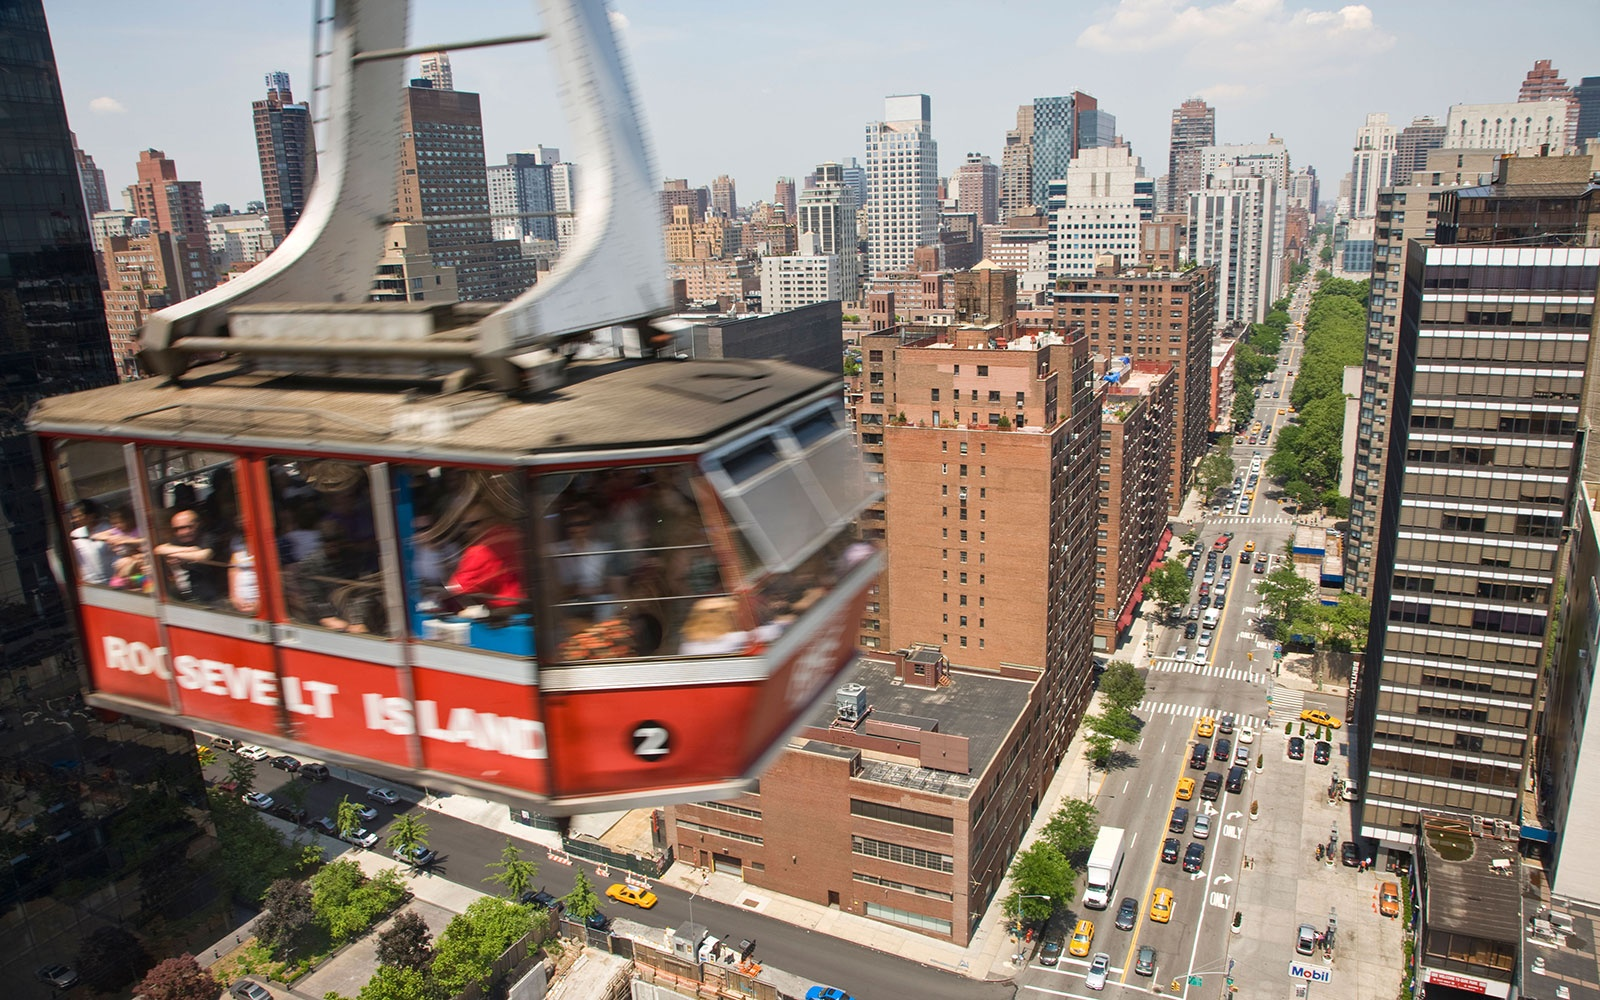 Roosevelt Island Tram, New York City